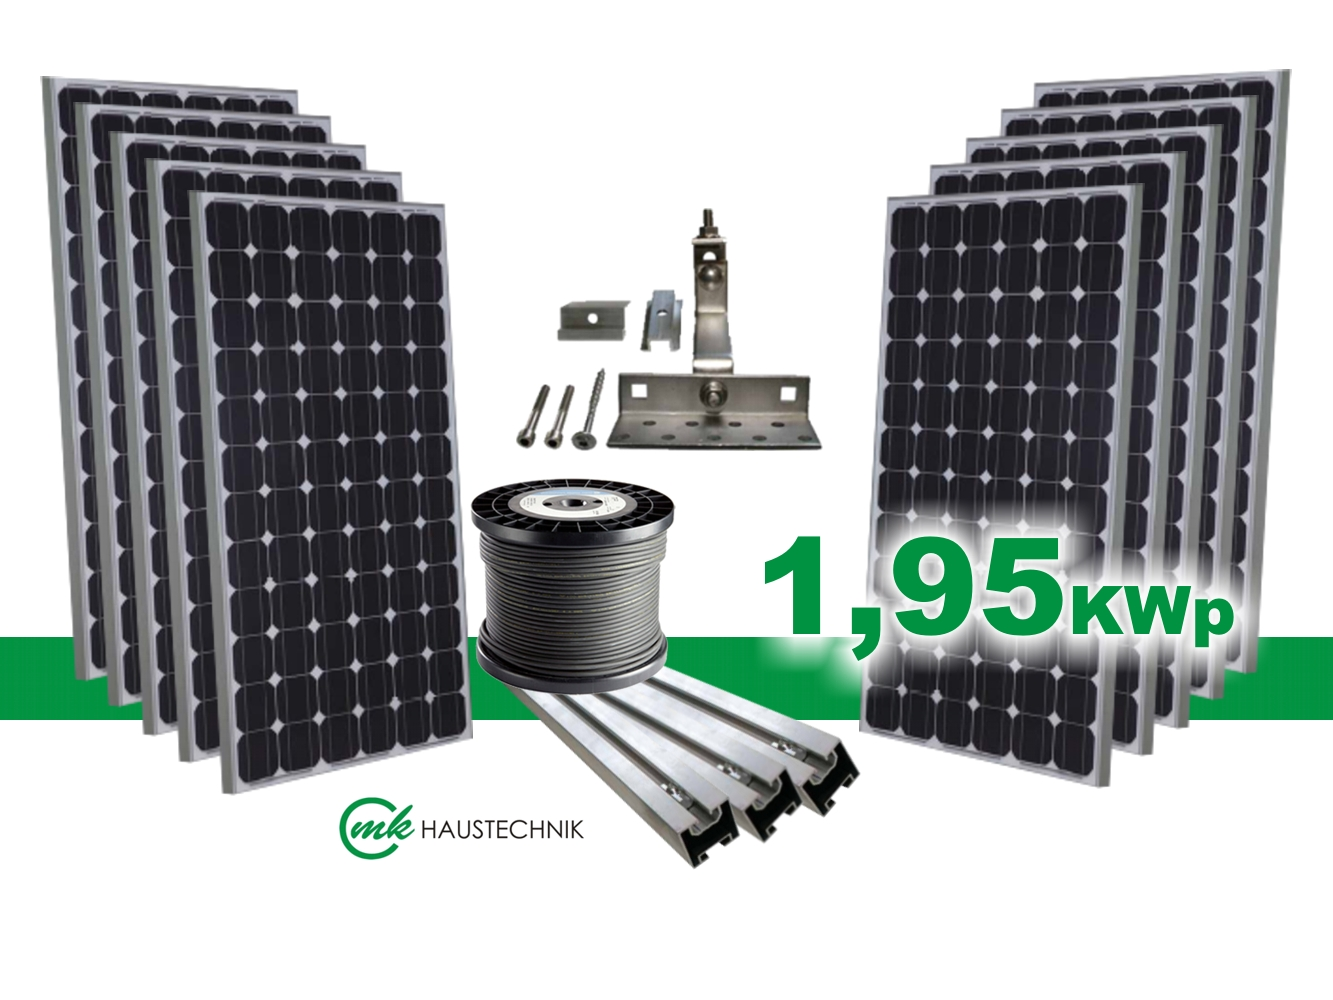 solaranlage bausatz photovoltaikanlage 1 95kwp solarmodule ohne wechselrichter ebay. Black Bedroom Furniture Sets. Home Design Ideas